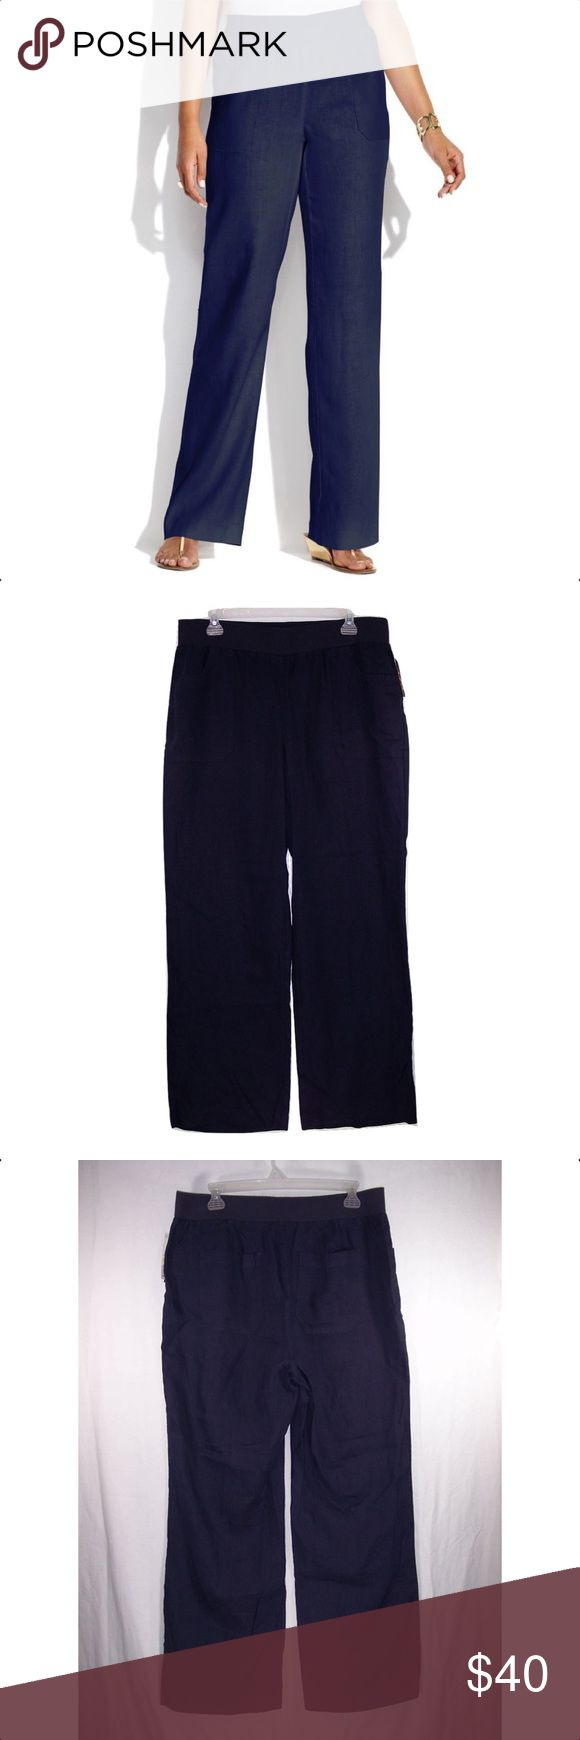 INC International Concepts Wide Leg Linen Pants Navy in color, pull on style with a wide elastic waistband, front pockets, back patch pockets, wide legs, fabric is 100% Linen and machine washable. Measurements: 16W waist-36 to 44 (stretched), rise-11, hips-50, inseams-30 1/2. 18W waist-38 to 46 (stretched), rise-11 1/2, hips-52, inseam-31 1/2. NWT INC International Concepts Pants Wide Leg